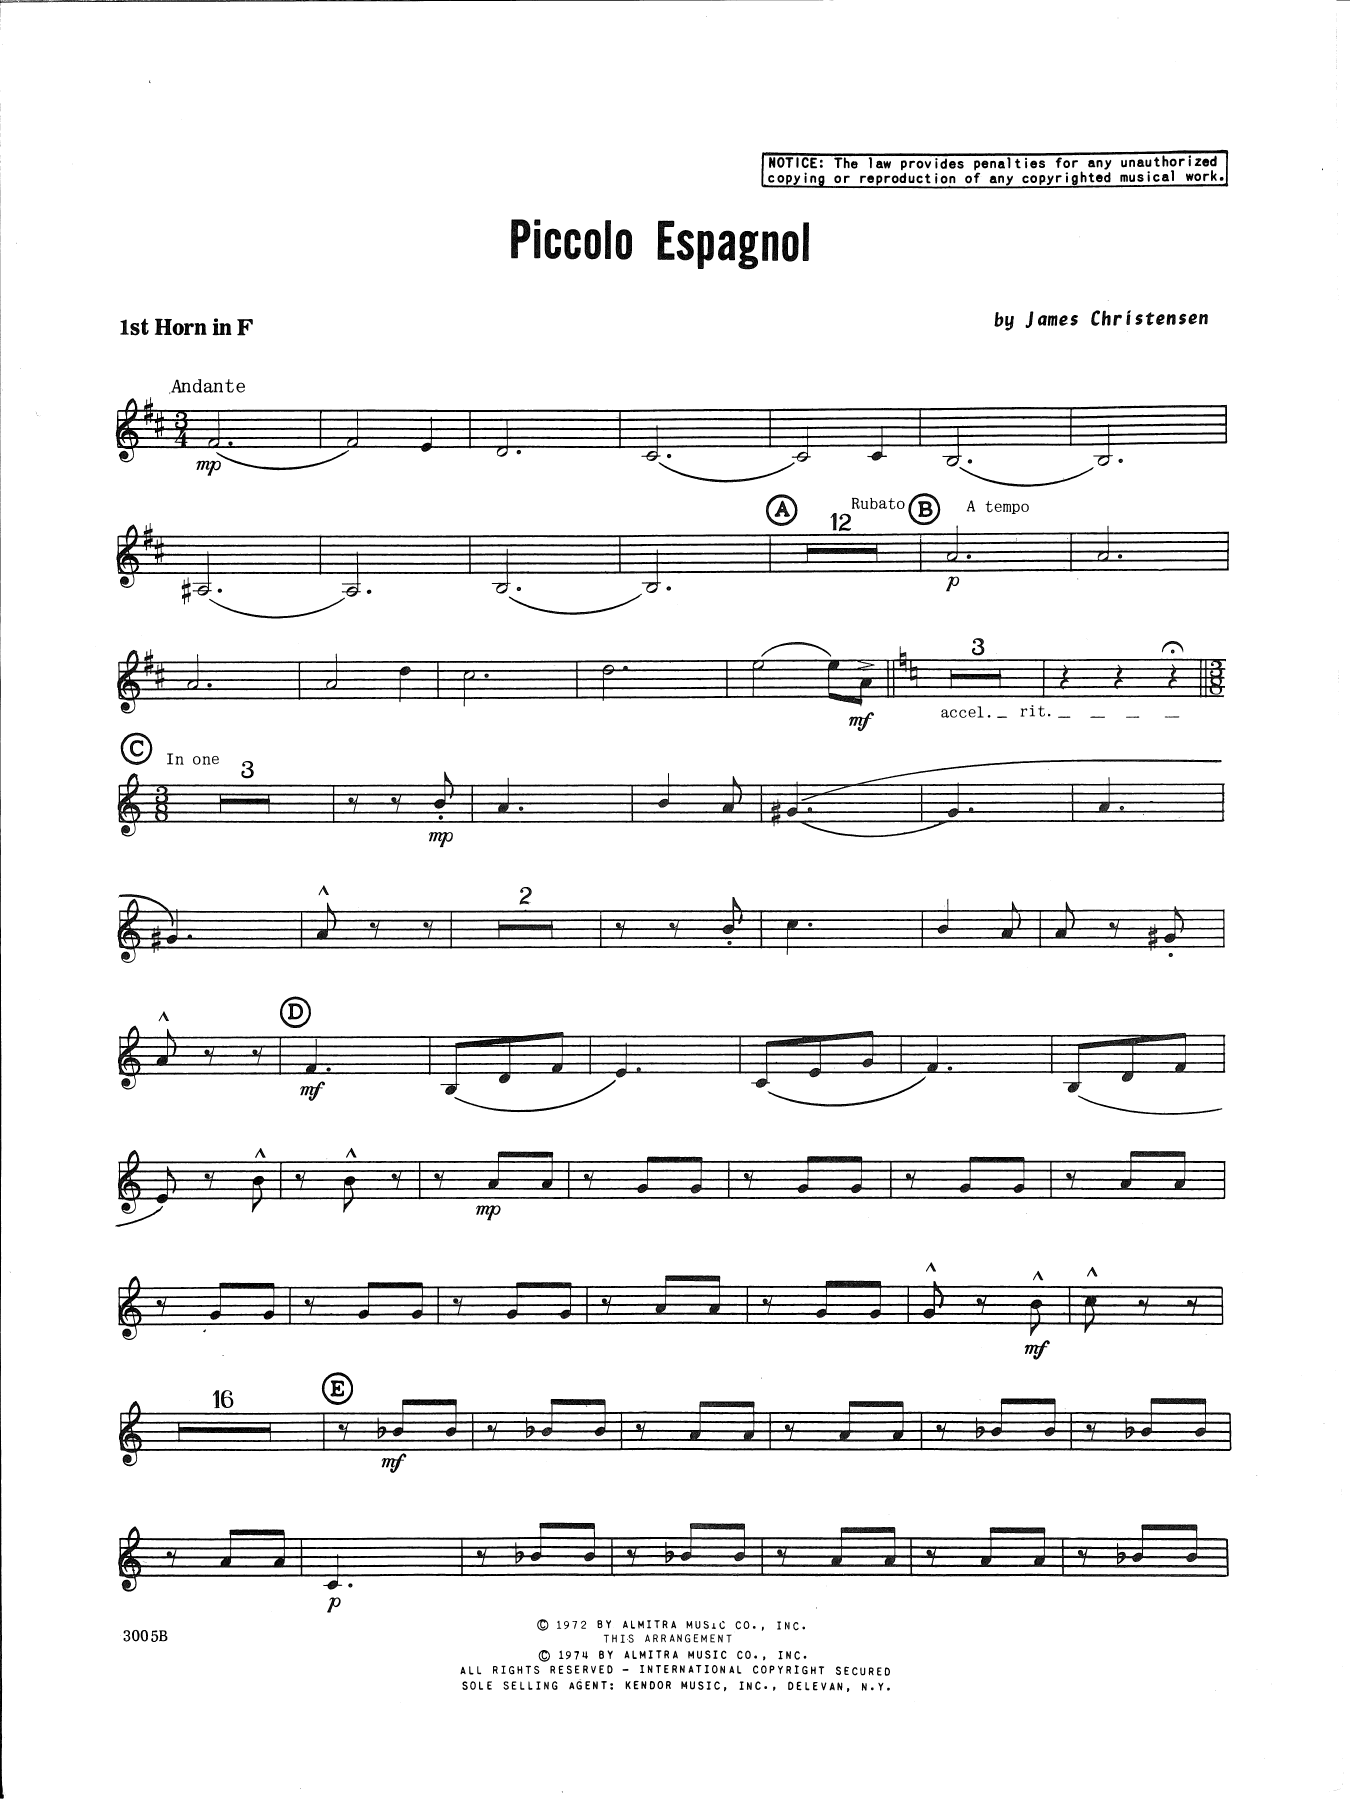 James Christensen Piccolo Espagnol - 1st Horn in F sheet music notes and chords. Download Printable PDF.